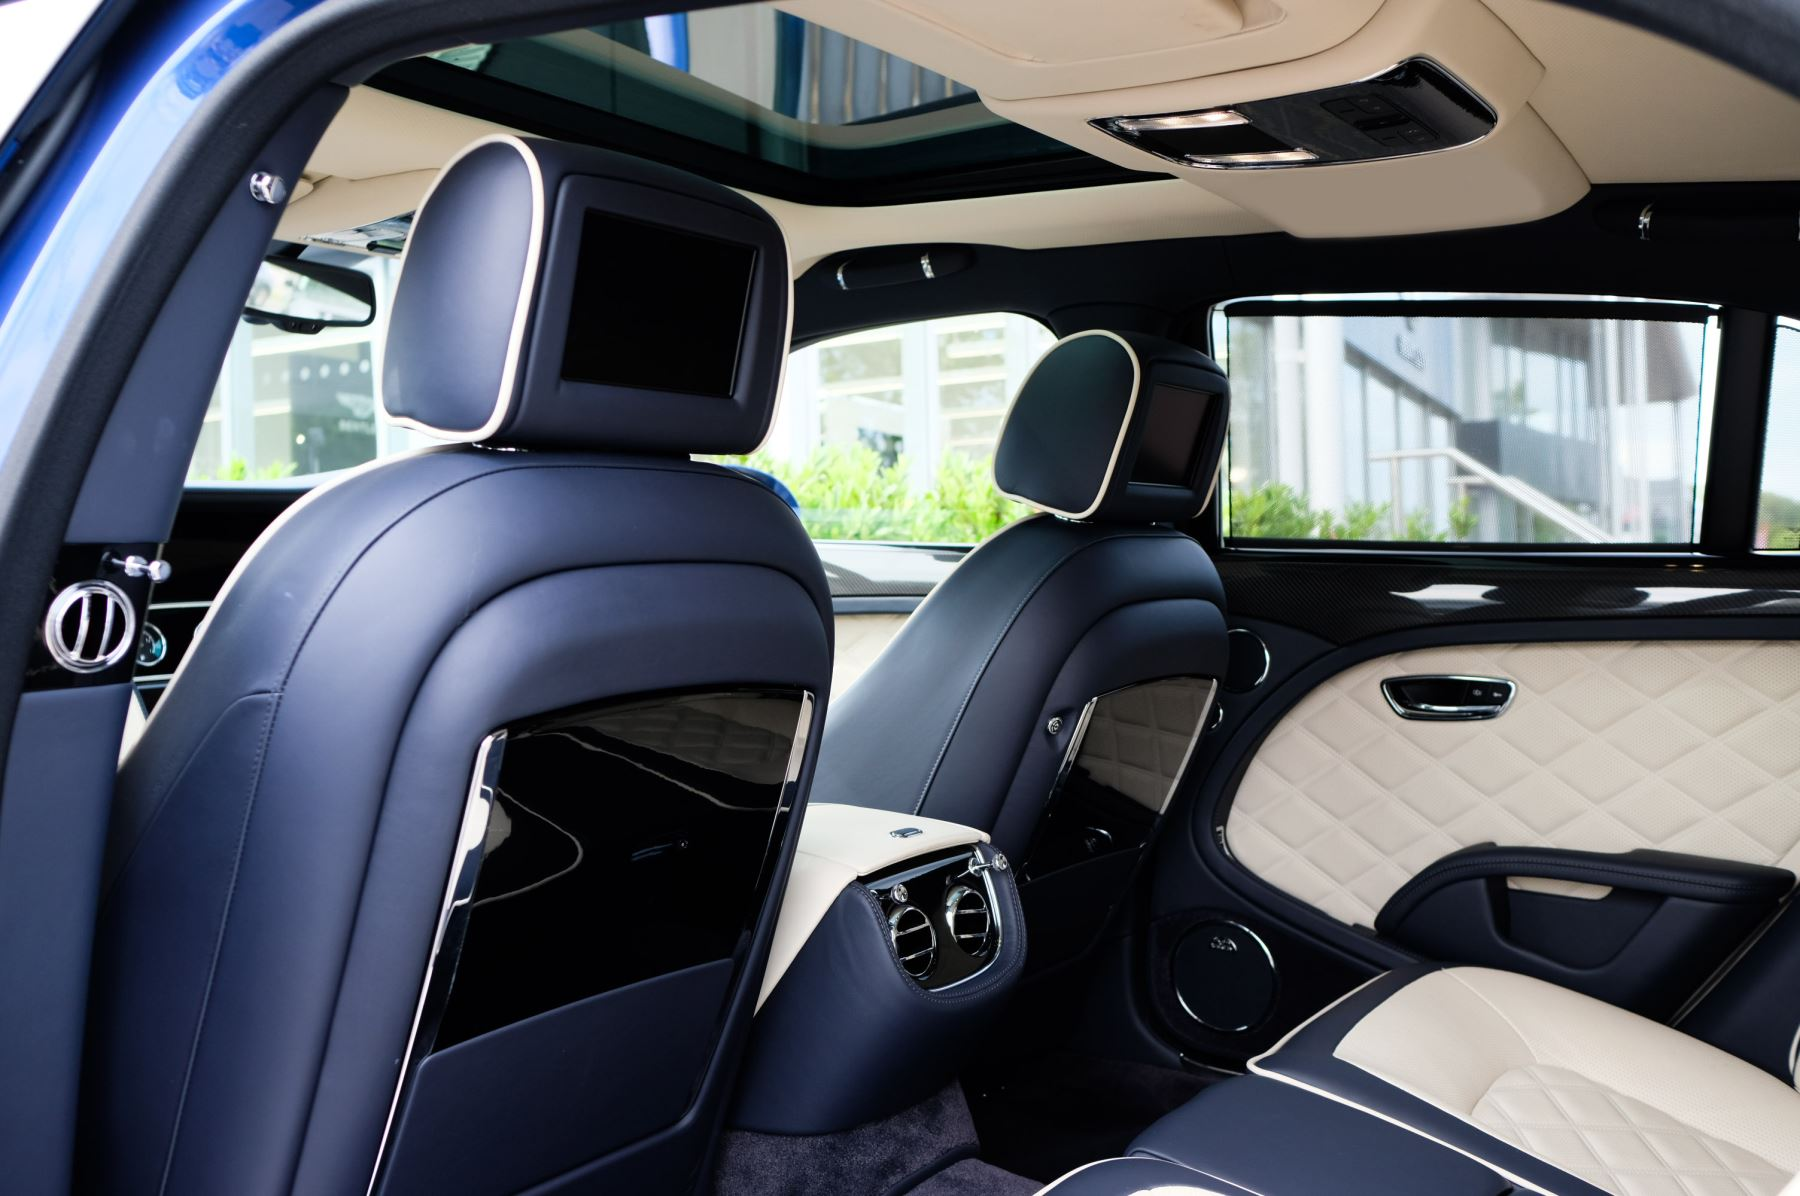 Bentley Mulsanne Speed 6.8 V8 Speed - Speed Premier and Entertainment Specification image 14